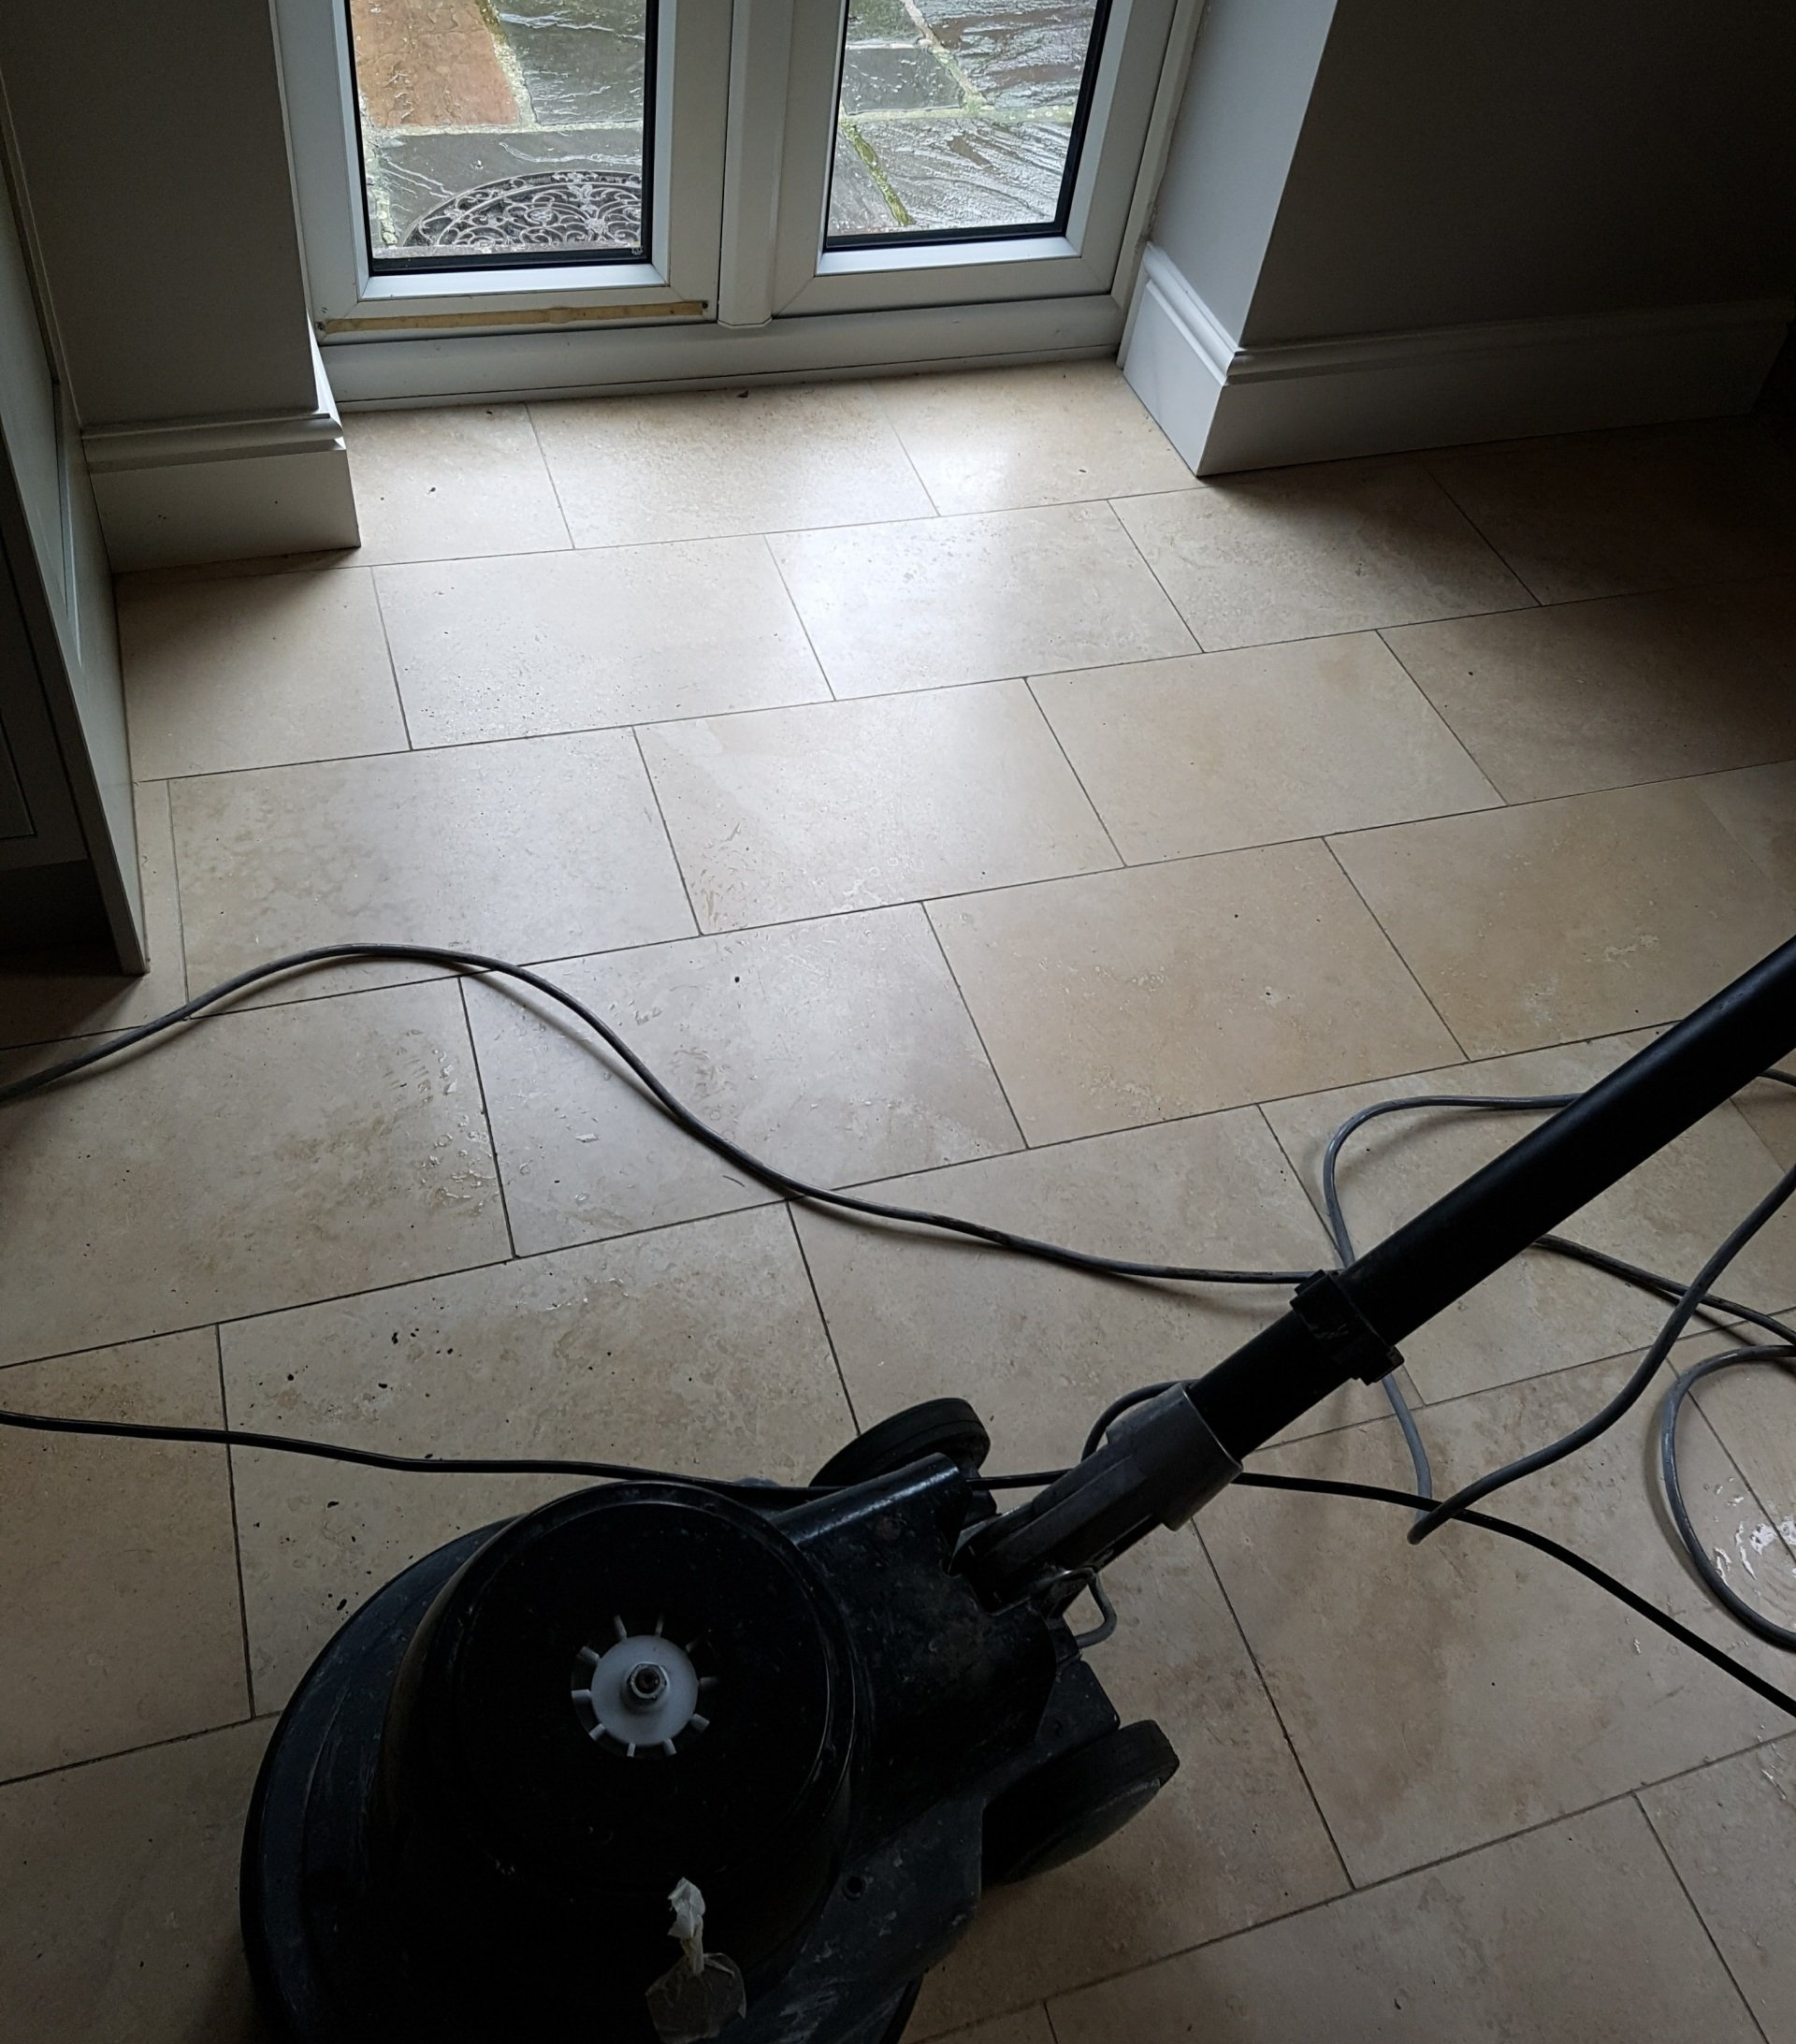 TRAVERTINE TILED FLOOR CLEANING, POLISHING AND SEALING IN